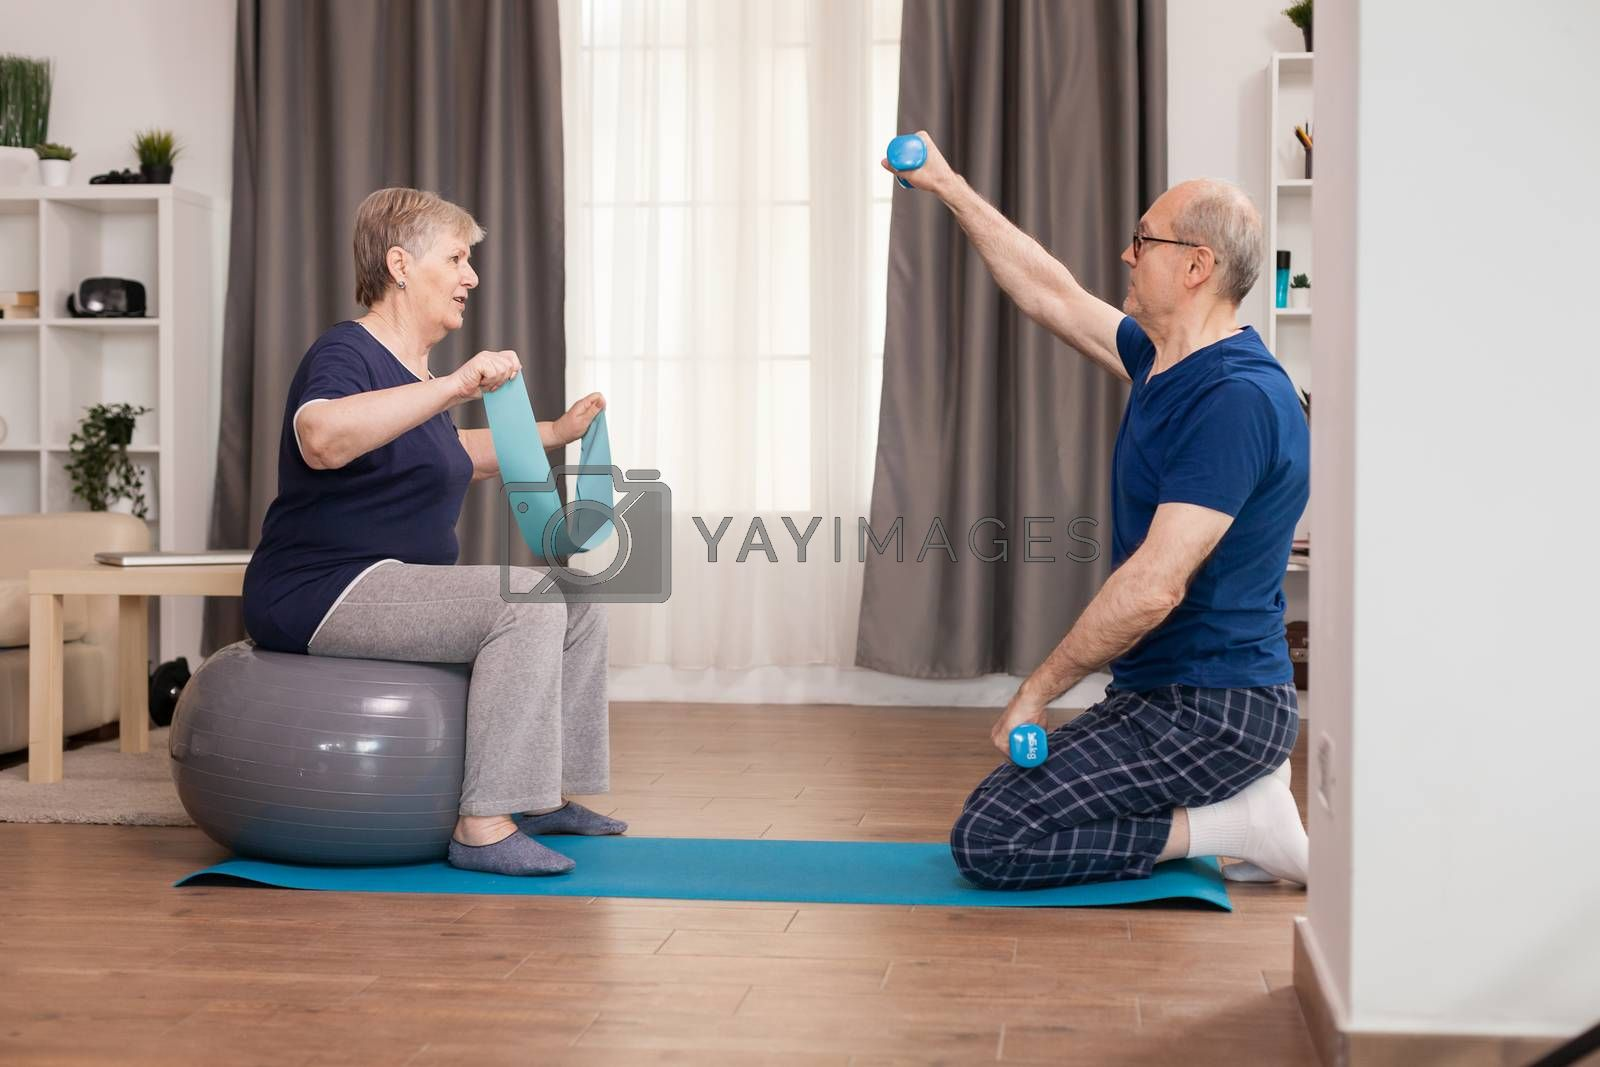 Active grandparents doing sports at home. Old person healthy lifestyle exercise at home, workout and training, sport activity at home on yoga mat.